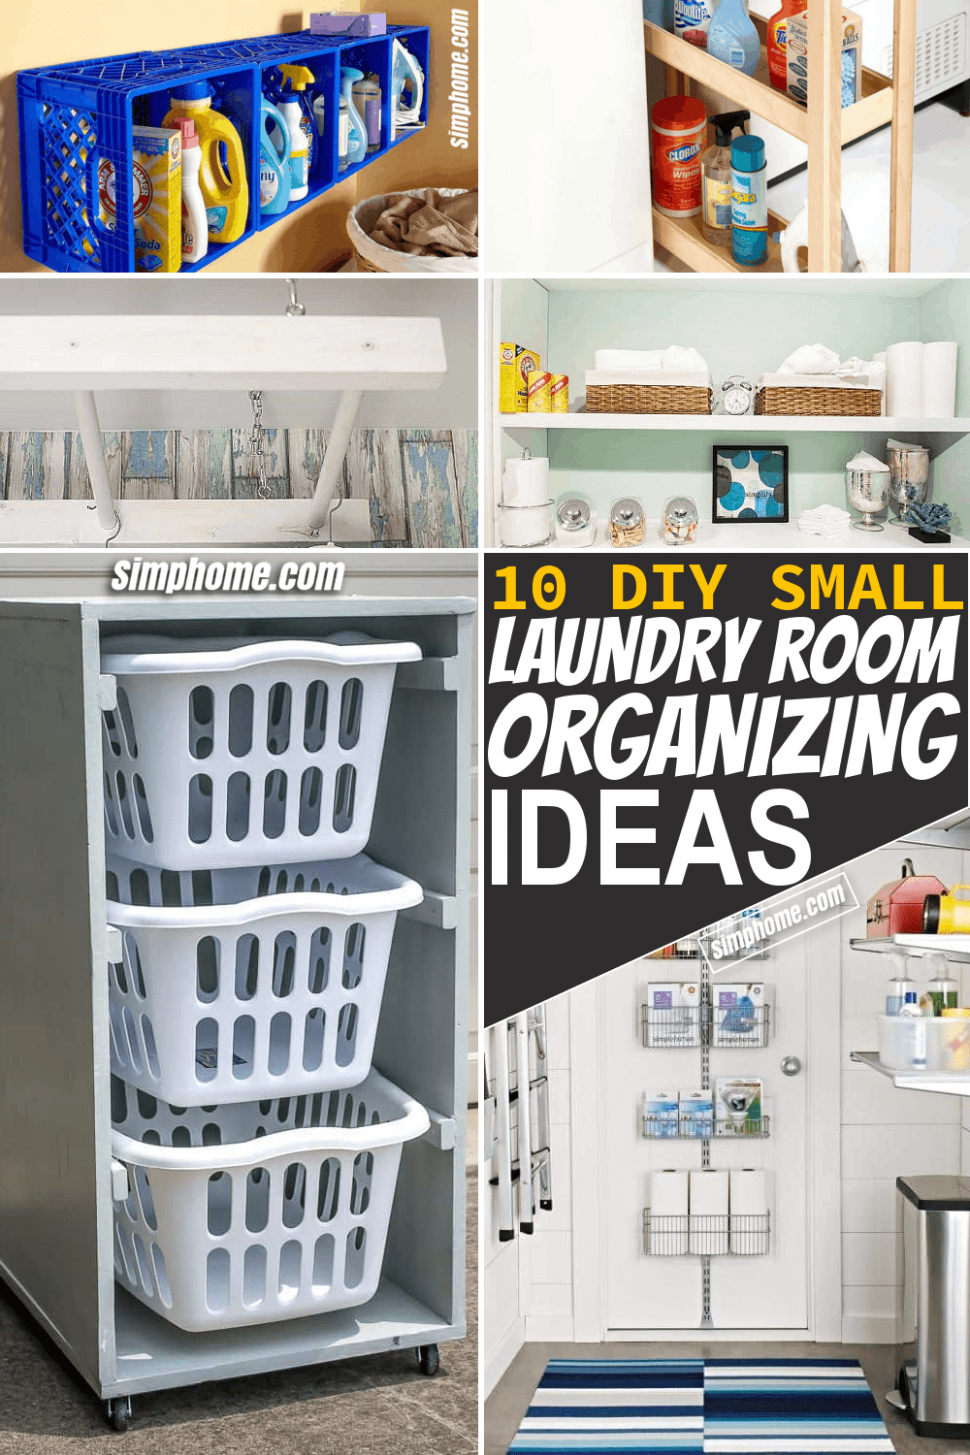 10 Small Laundry Room Organization Ideas - Simphome - laundry room organization ideas diy